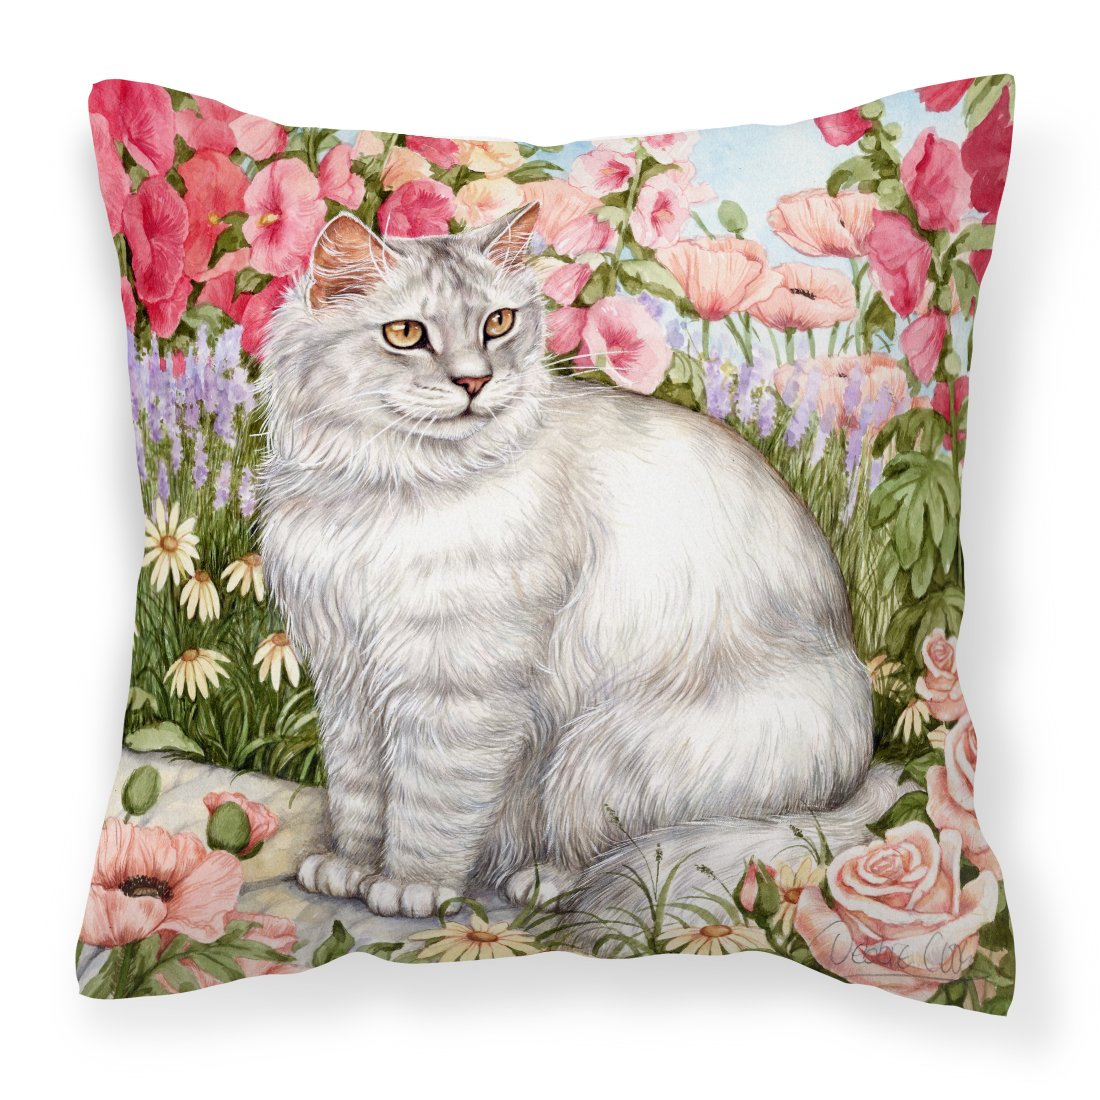 Cats Just Looking in the fish bowl Canvas Decorative Pillow by Caroline's Treasures